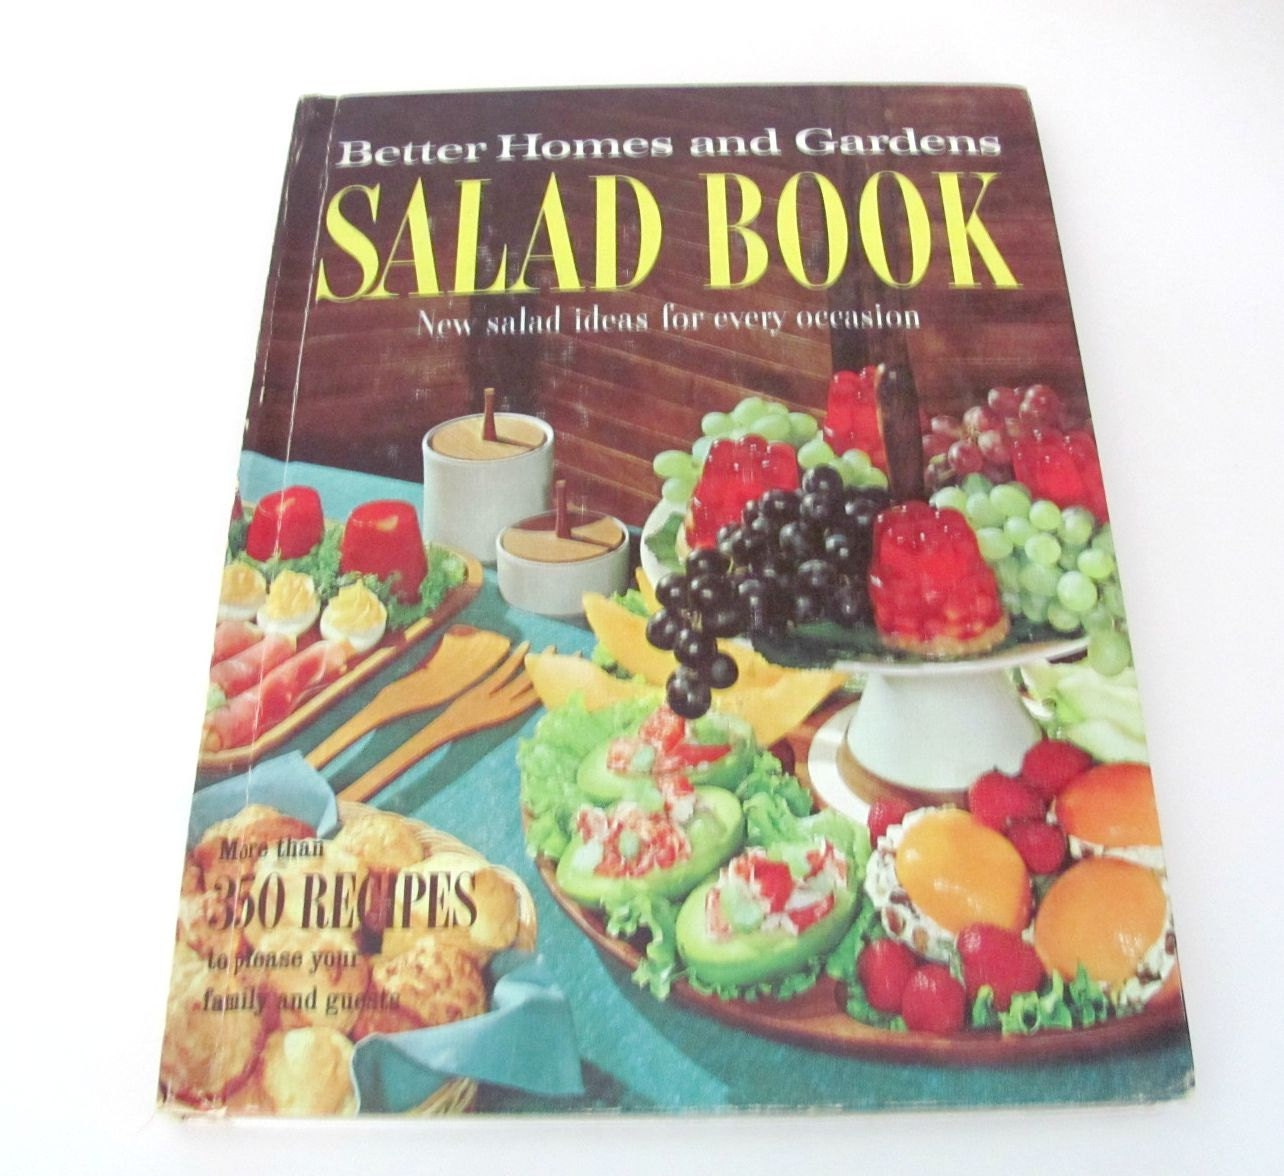 Vintage cookbook 1950 39 s better homes and gardens salad - Vintage better homes and gardens cookbook ...